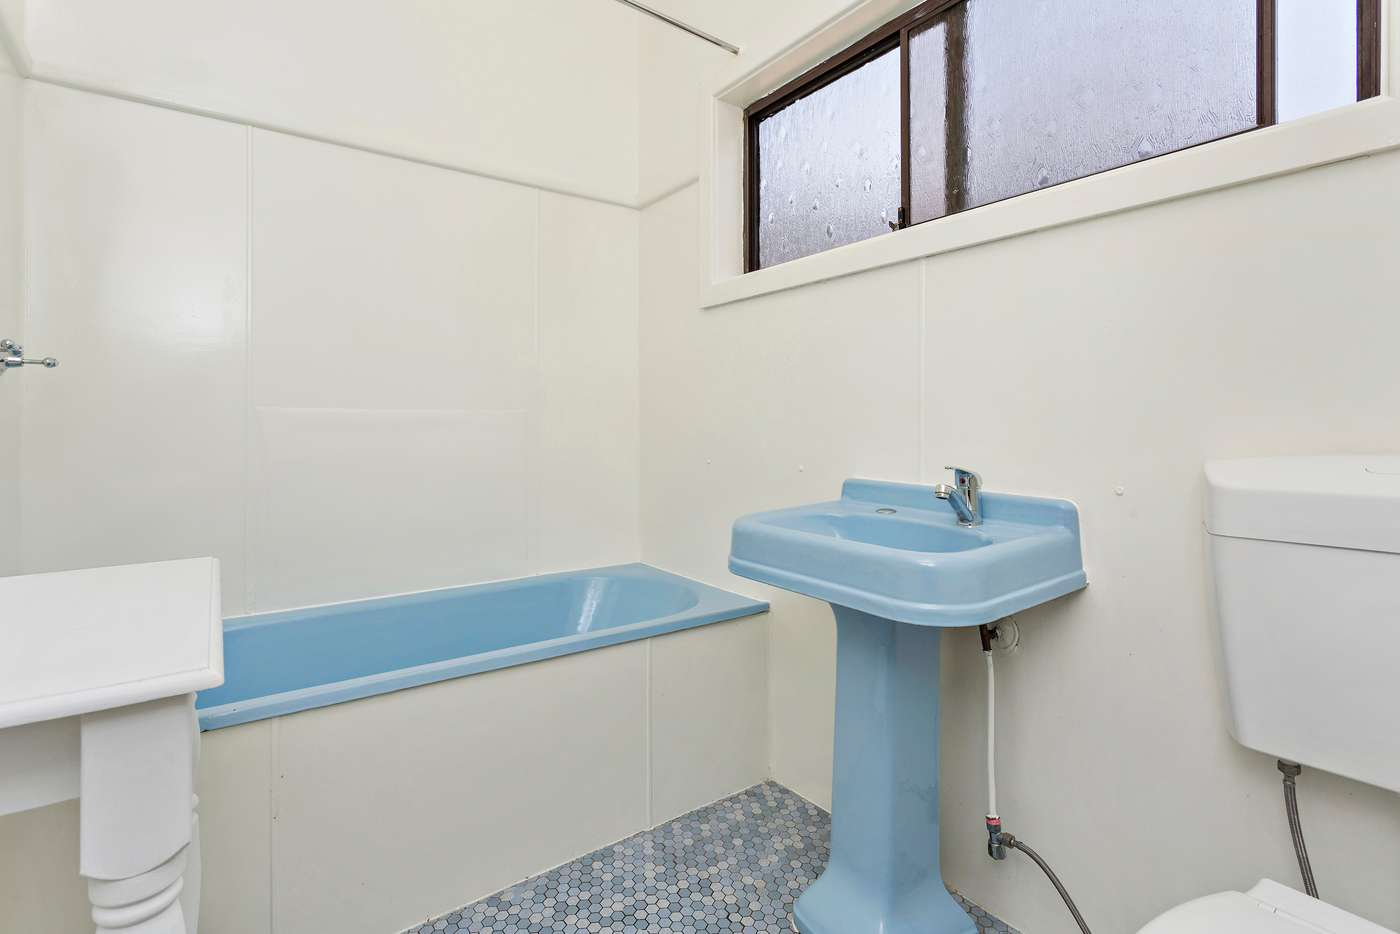 Sixth view of Homely house listing, 280 Gladstone Avenue, Mount Saint Thomas NSW 2500